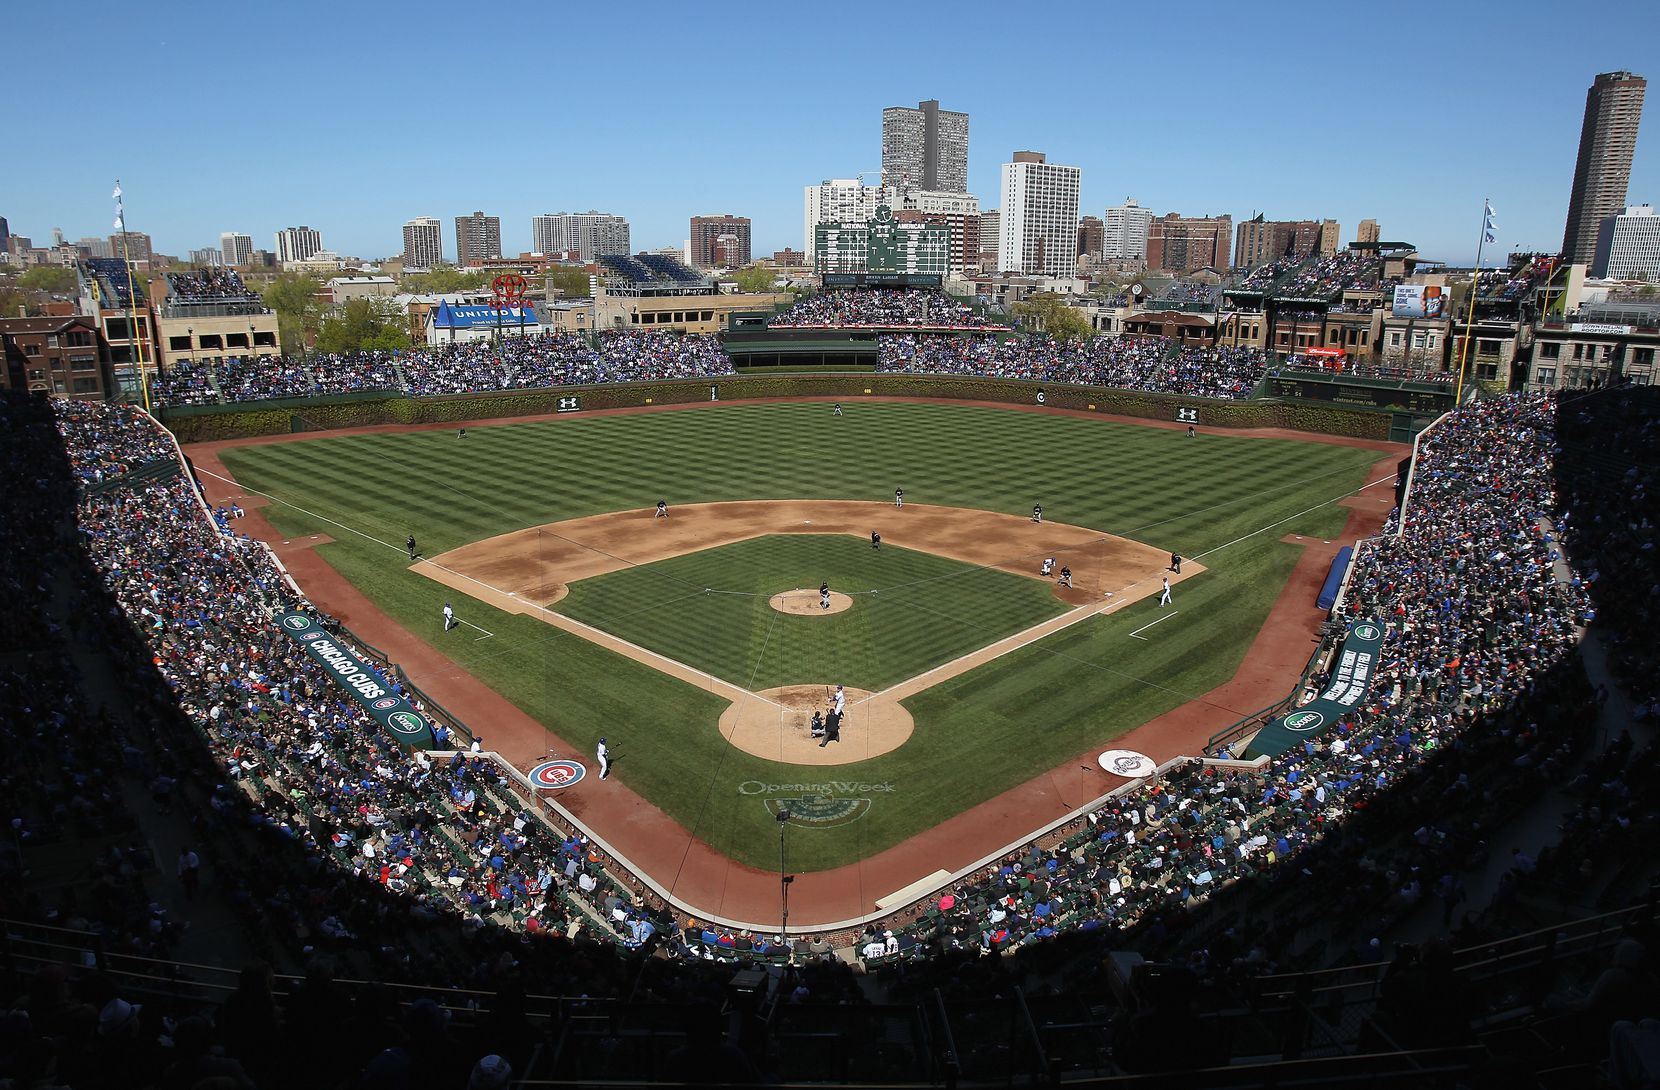 Wrigley Field — one of the greatest places to catch a game since 1914. The Cubs began play there in 1916.